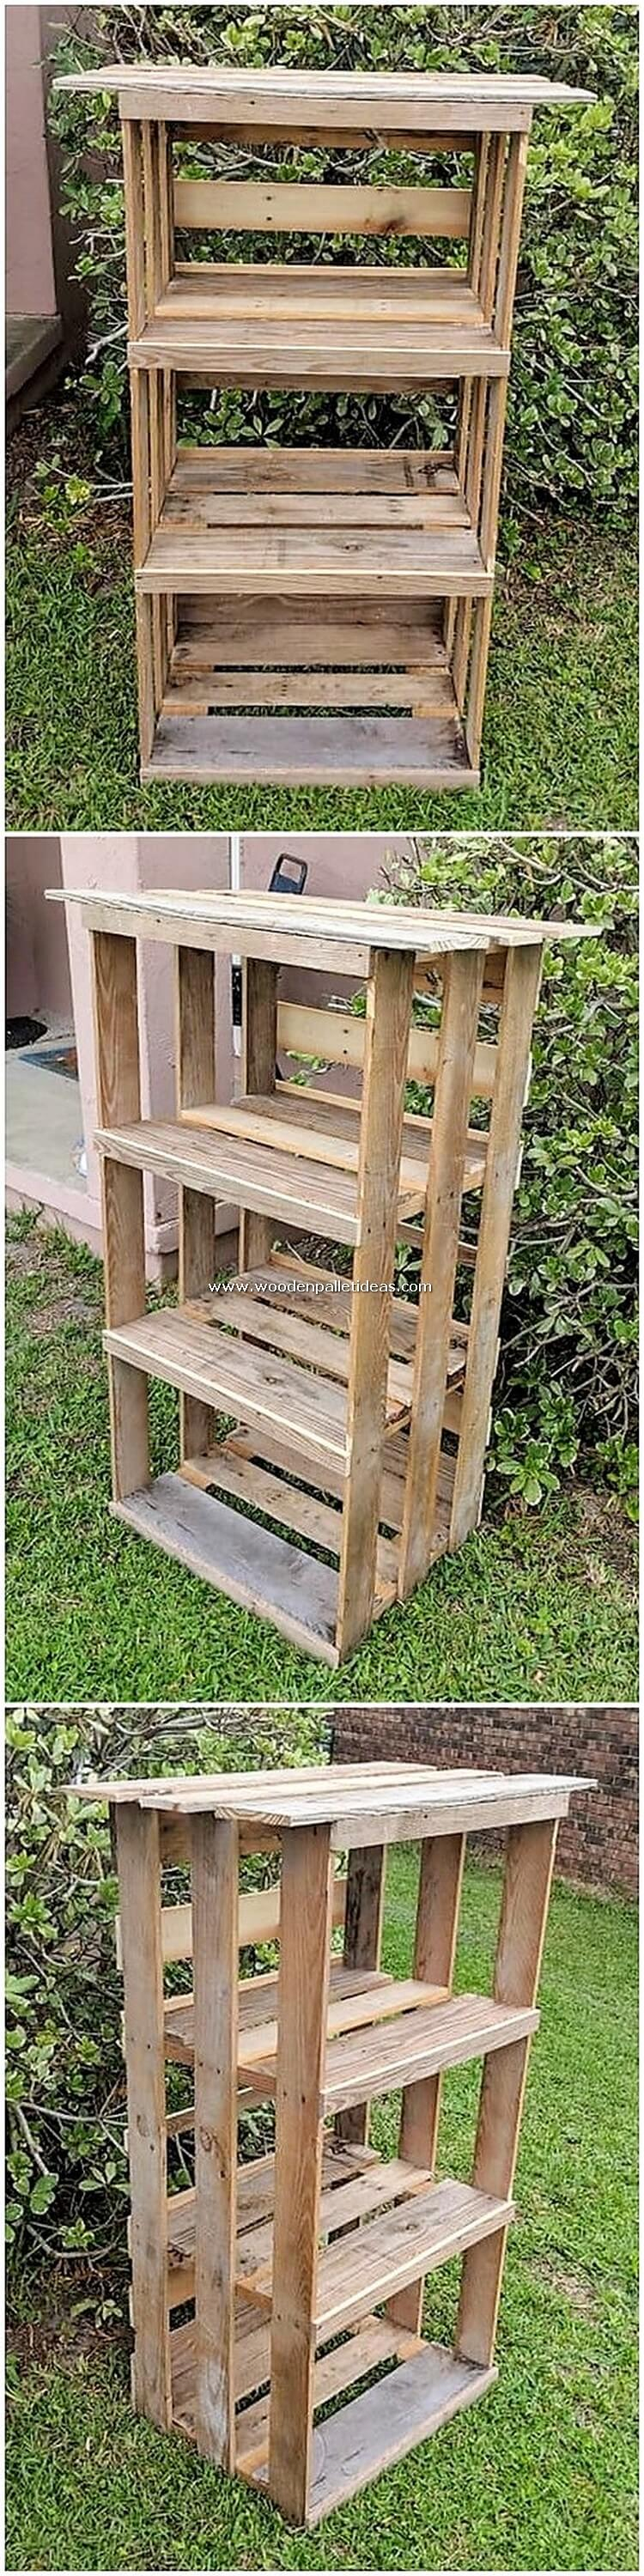 Pallet-Shelving-Stand